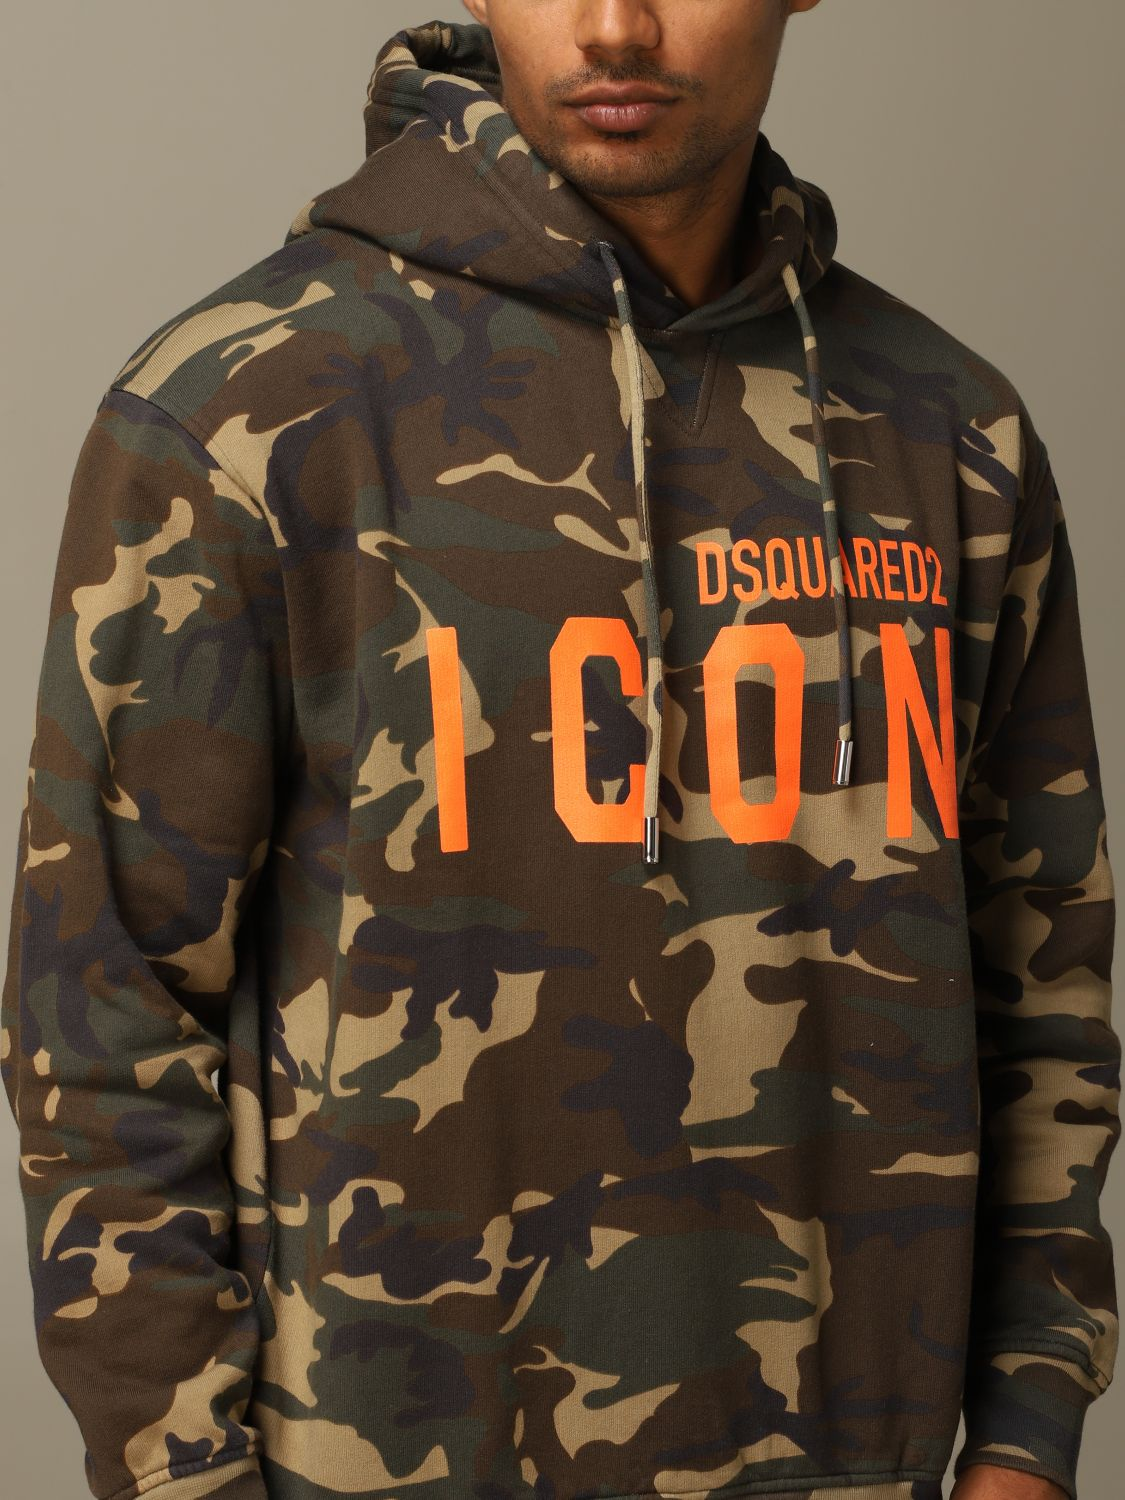 Sweatshirt Dsquared2: Sweatshirt herren Dsquared2 military 4